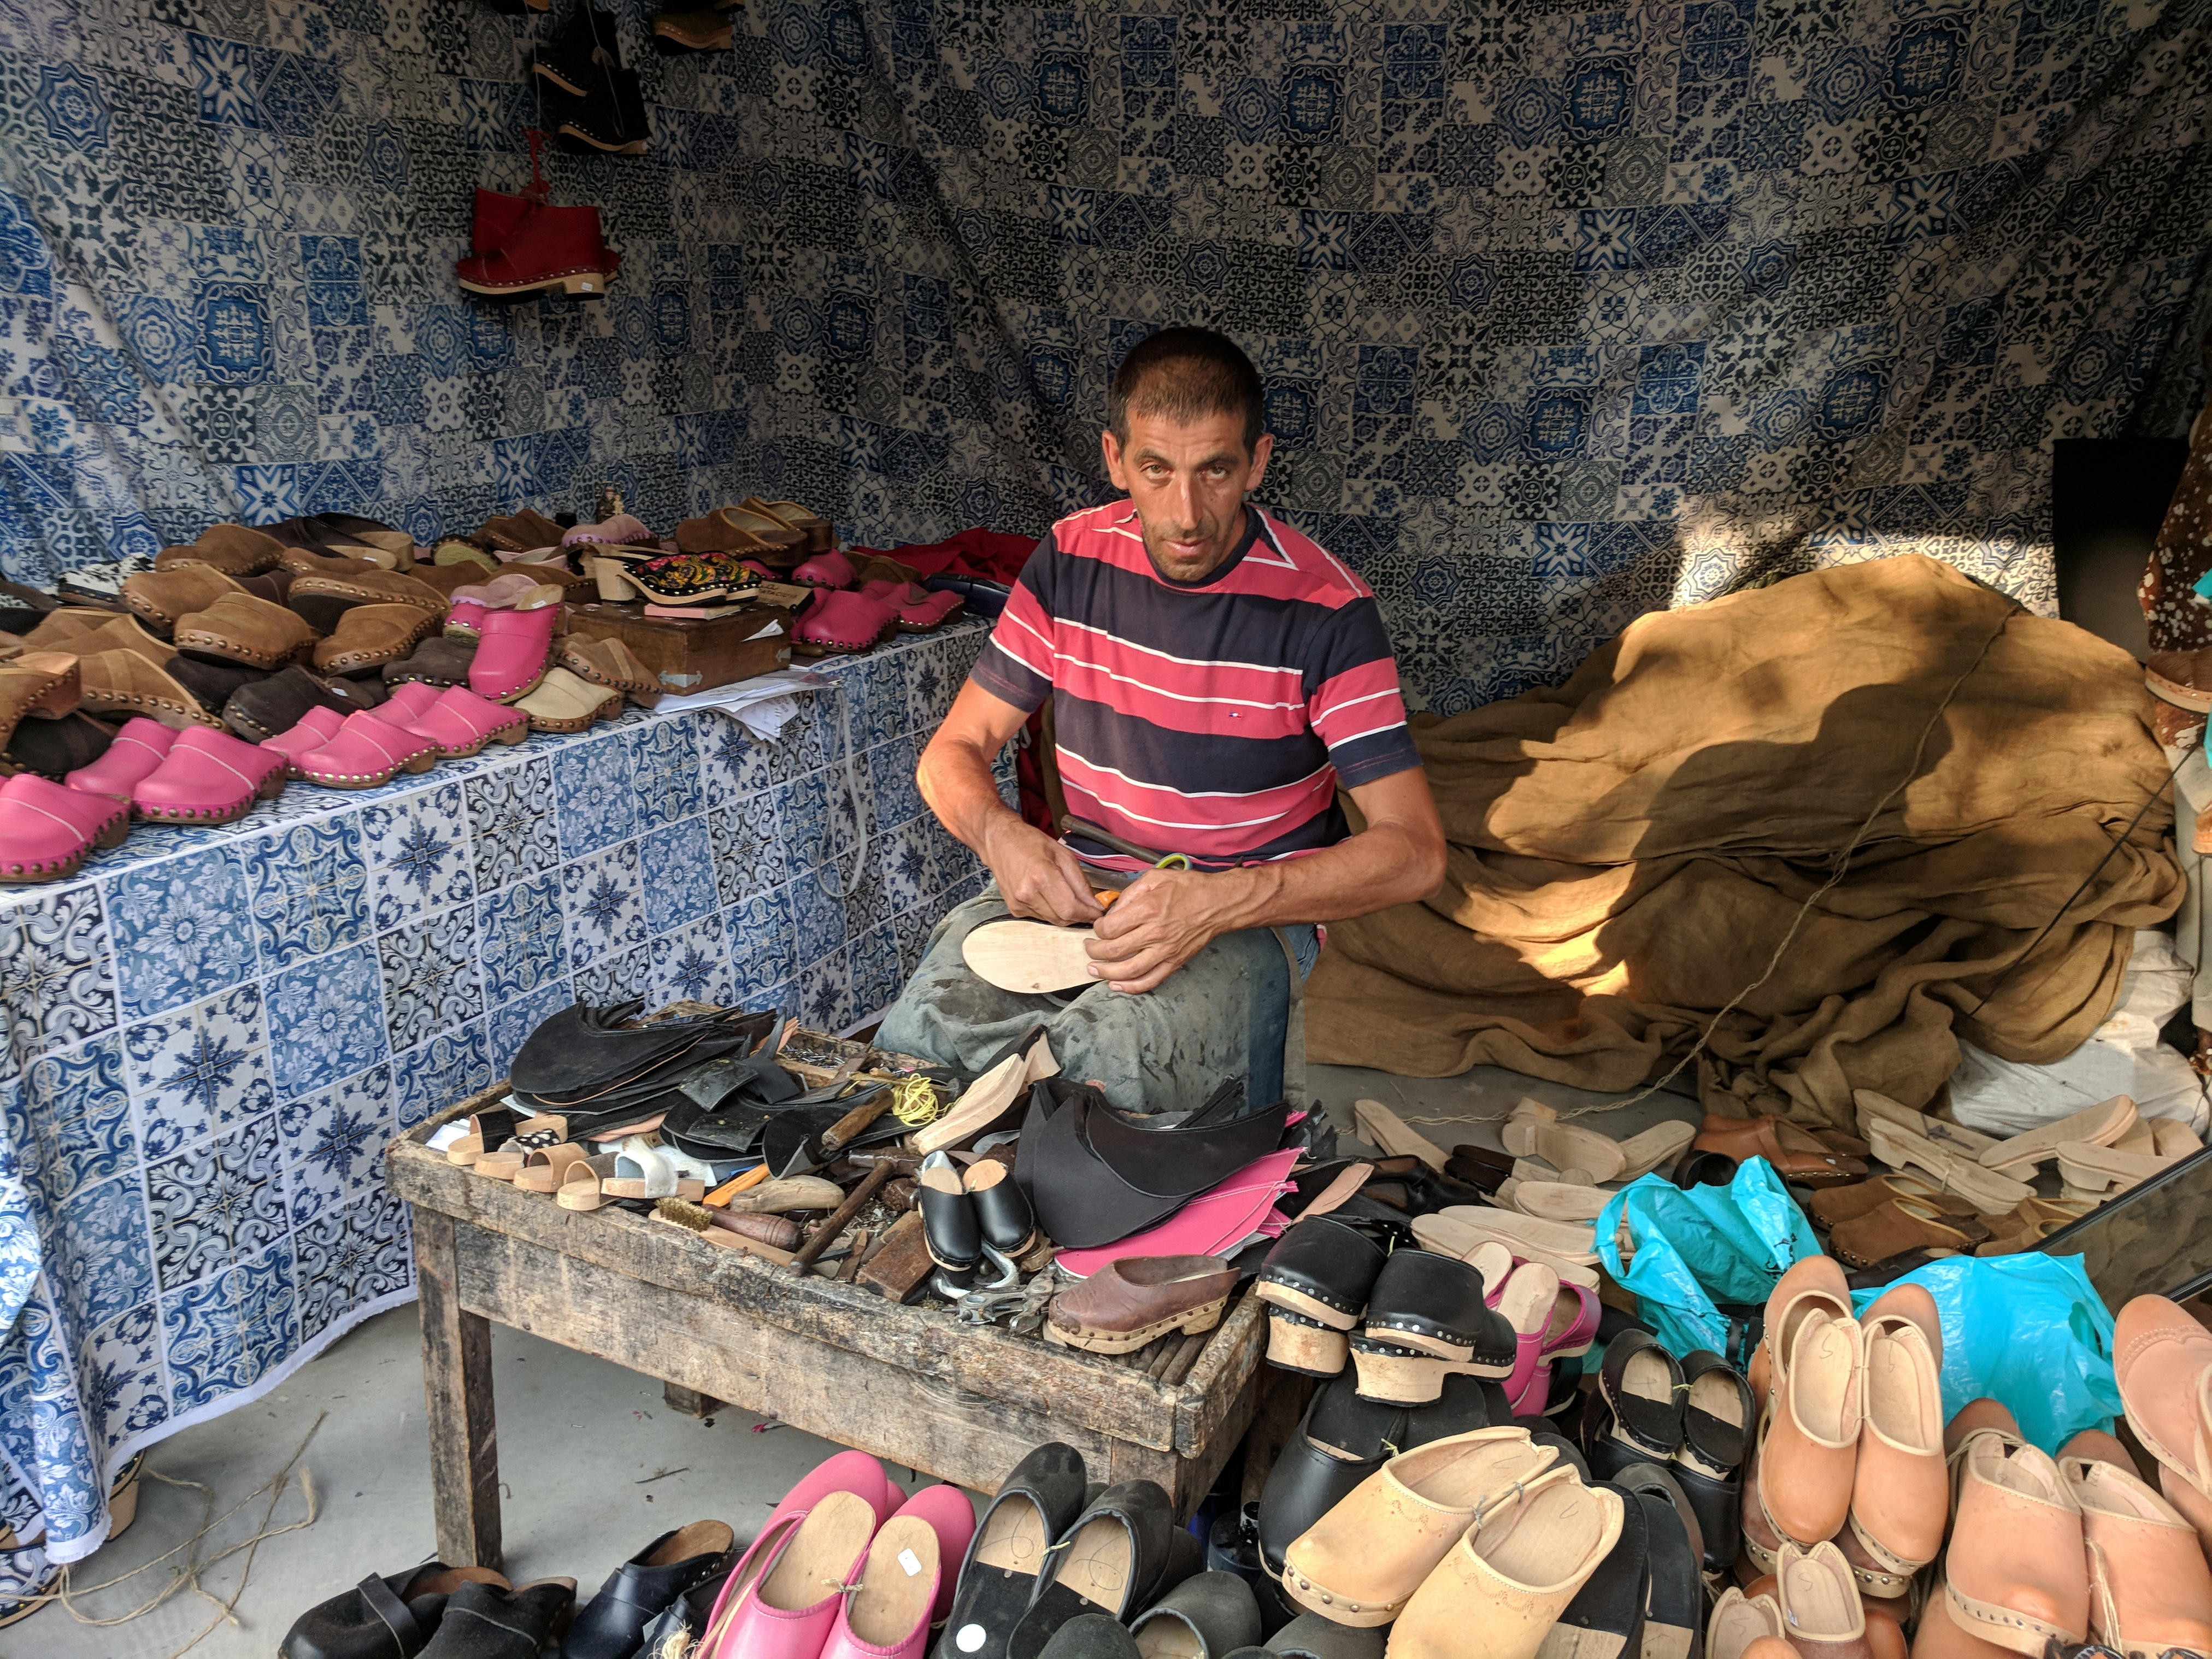 Portugal - Algarve / Fatacil (fair) in Lagoa: shoemaker